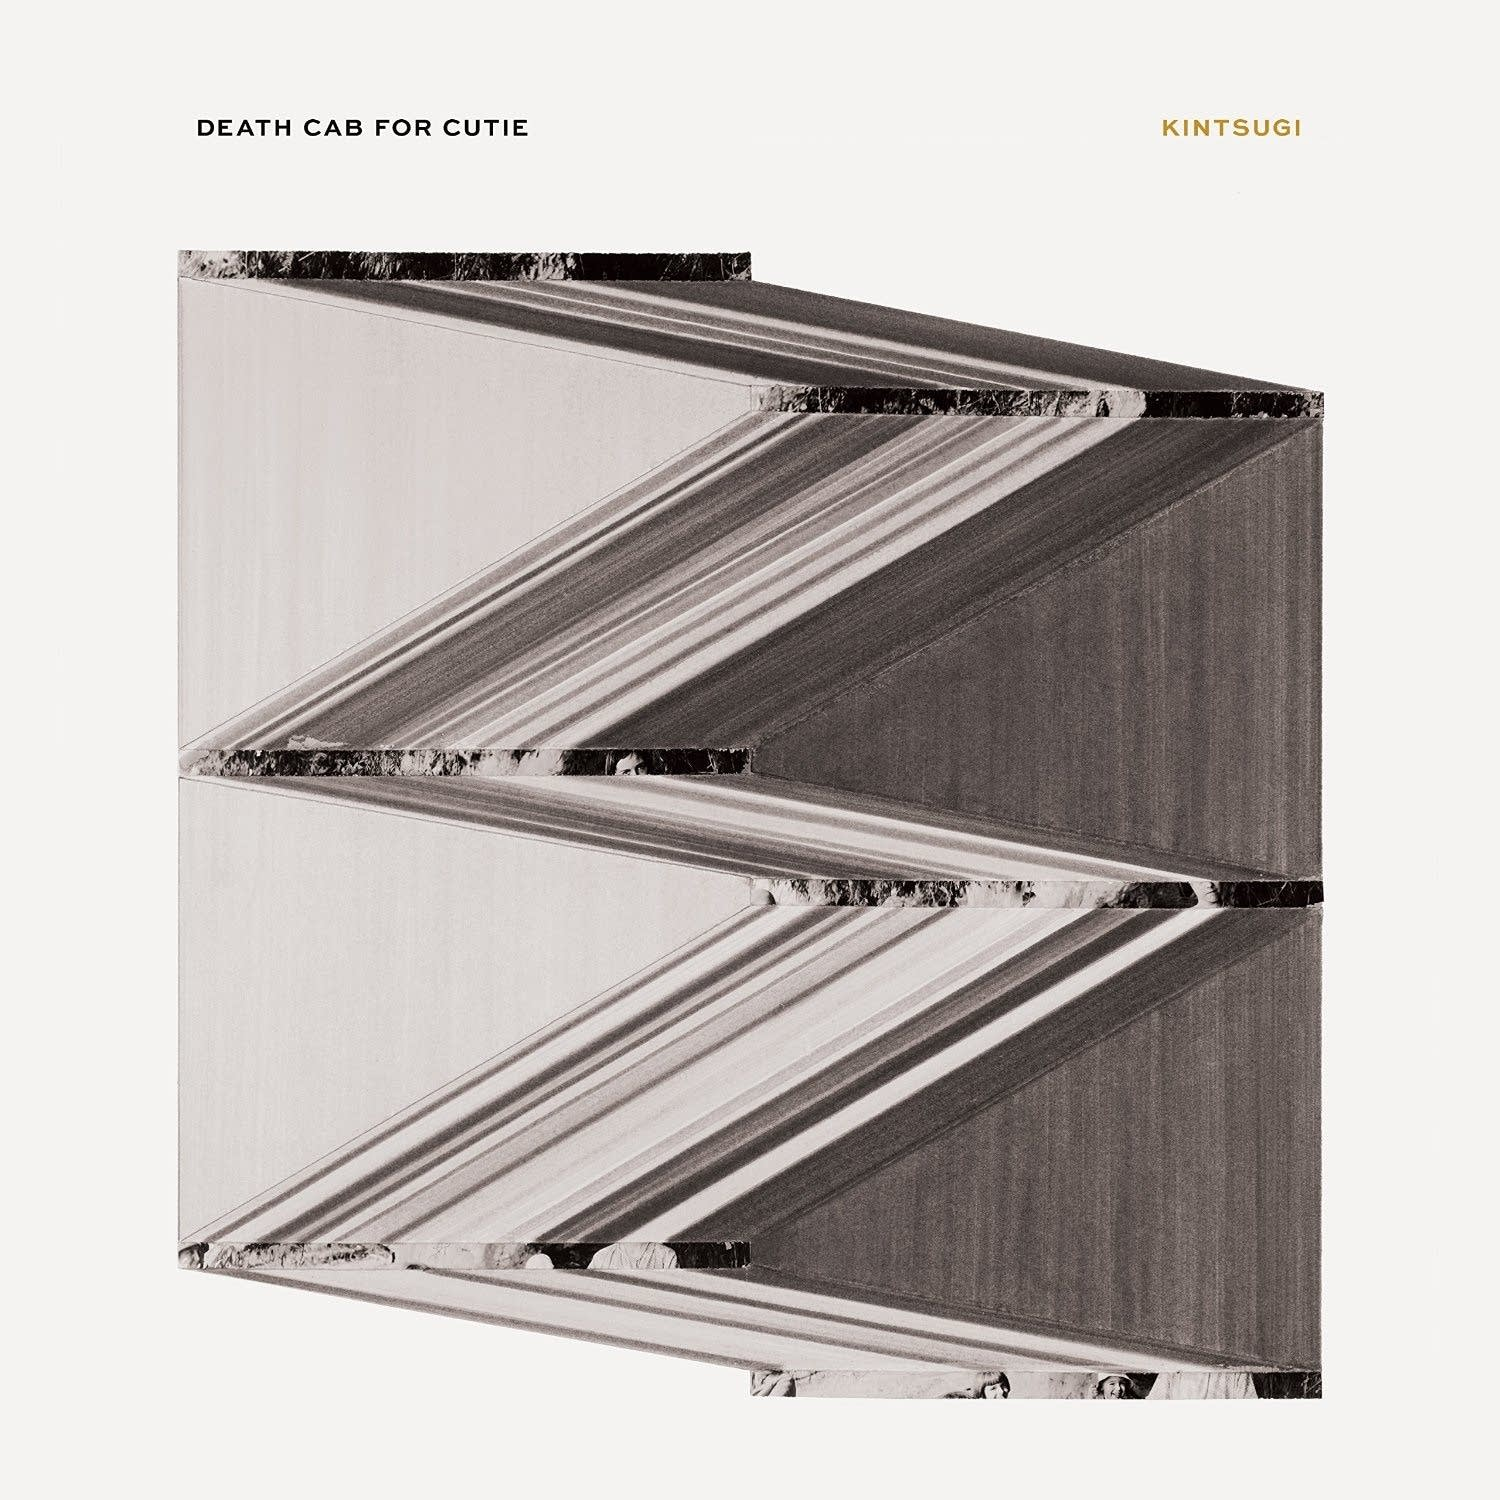 Death Cab for Cutie, 'Kintsugi'